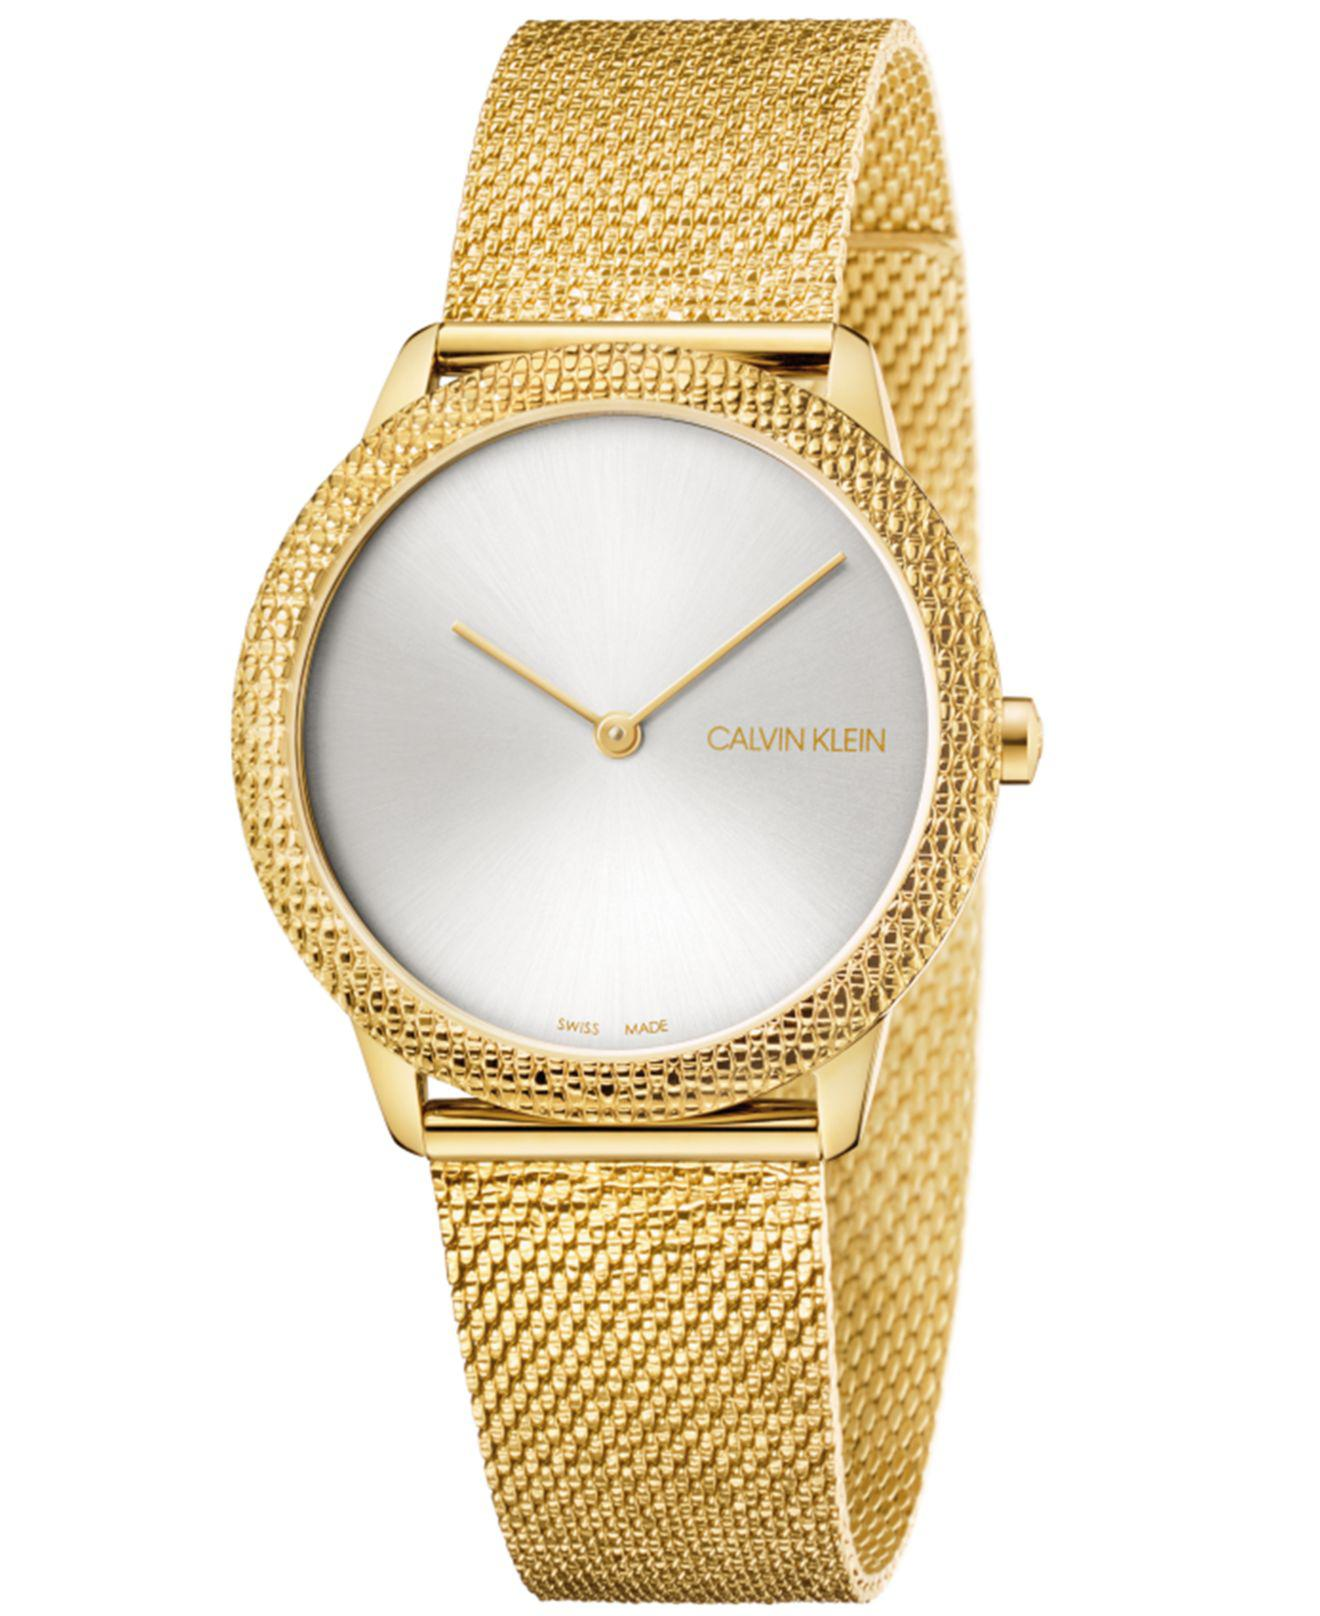 603e3db450 Calvin Klein - Metallic Swiss Minimal Yellow Gold-tone Pvd Stainless Steel  Mesh Bracelet Watch. View fullscreen